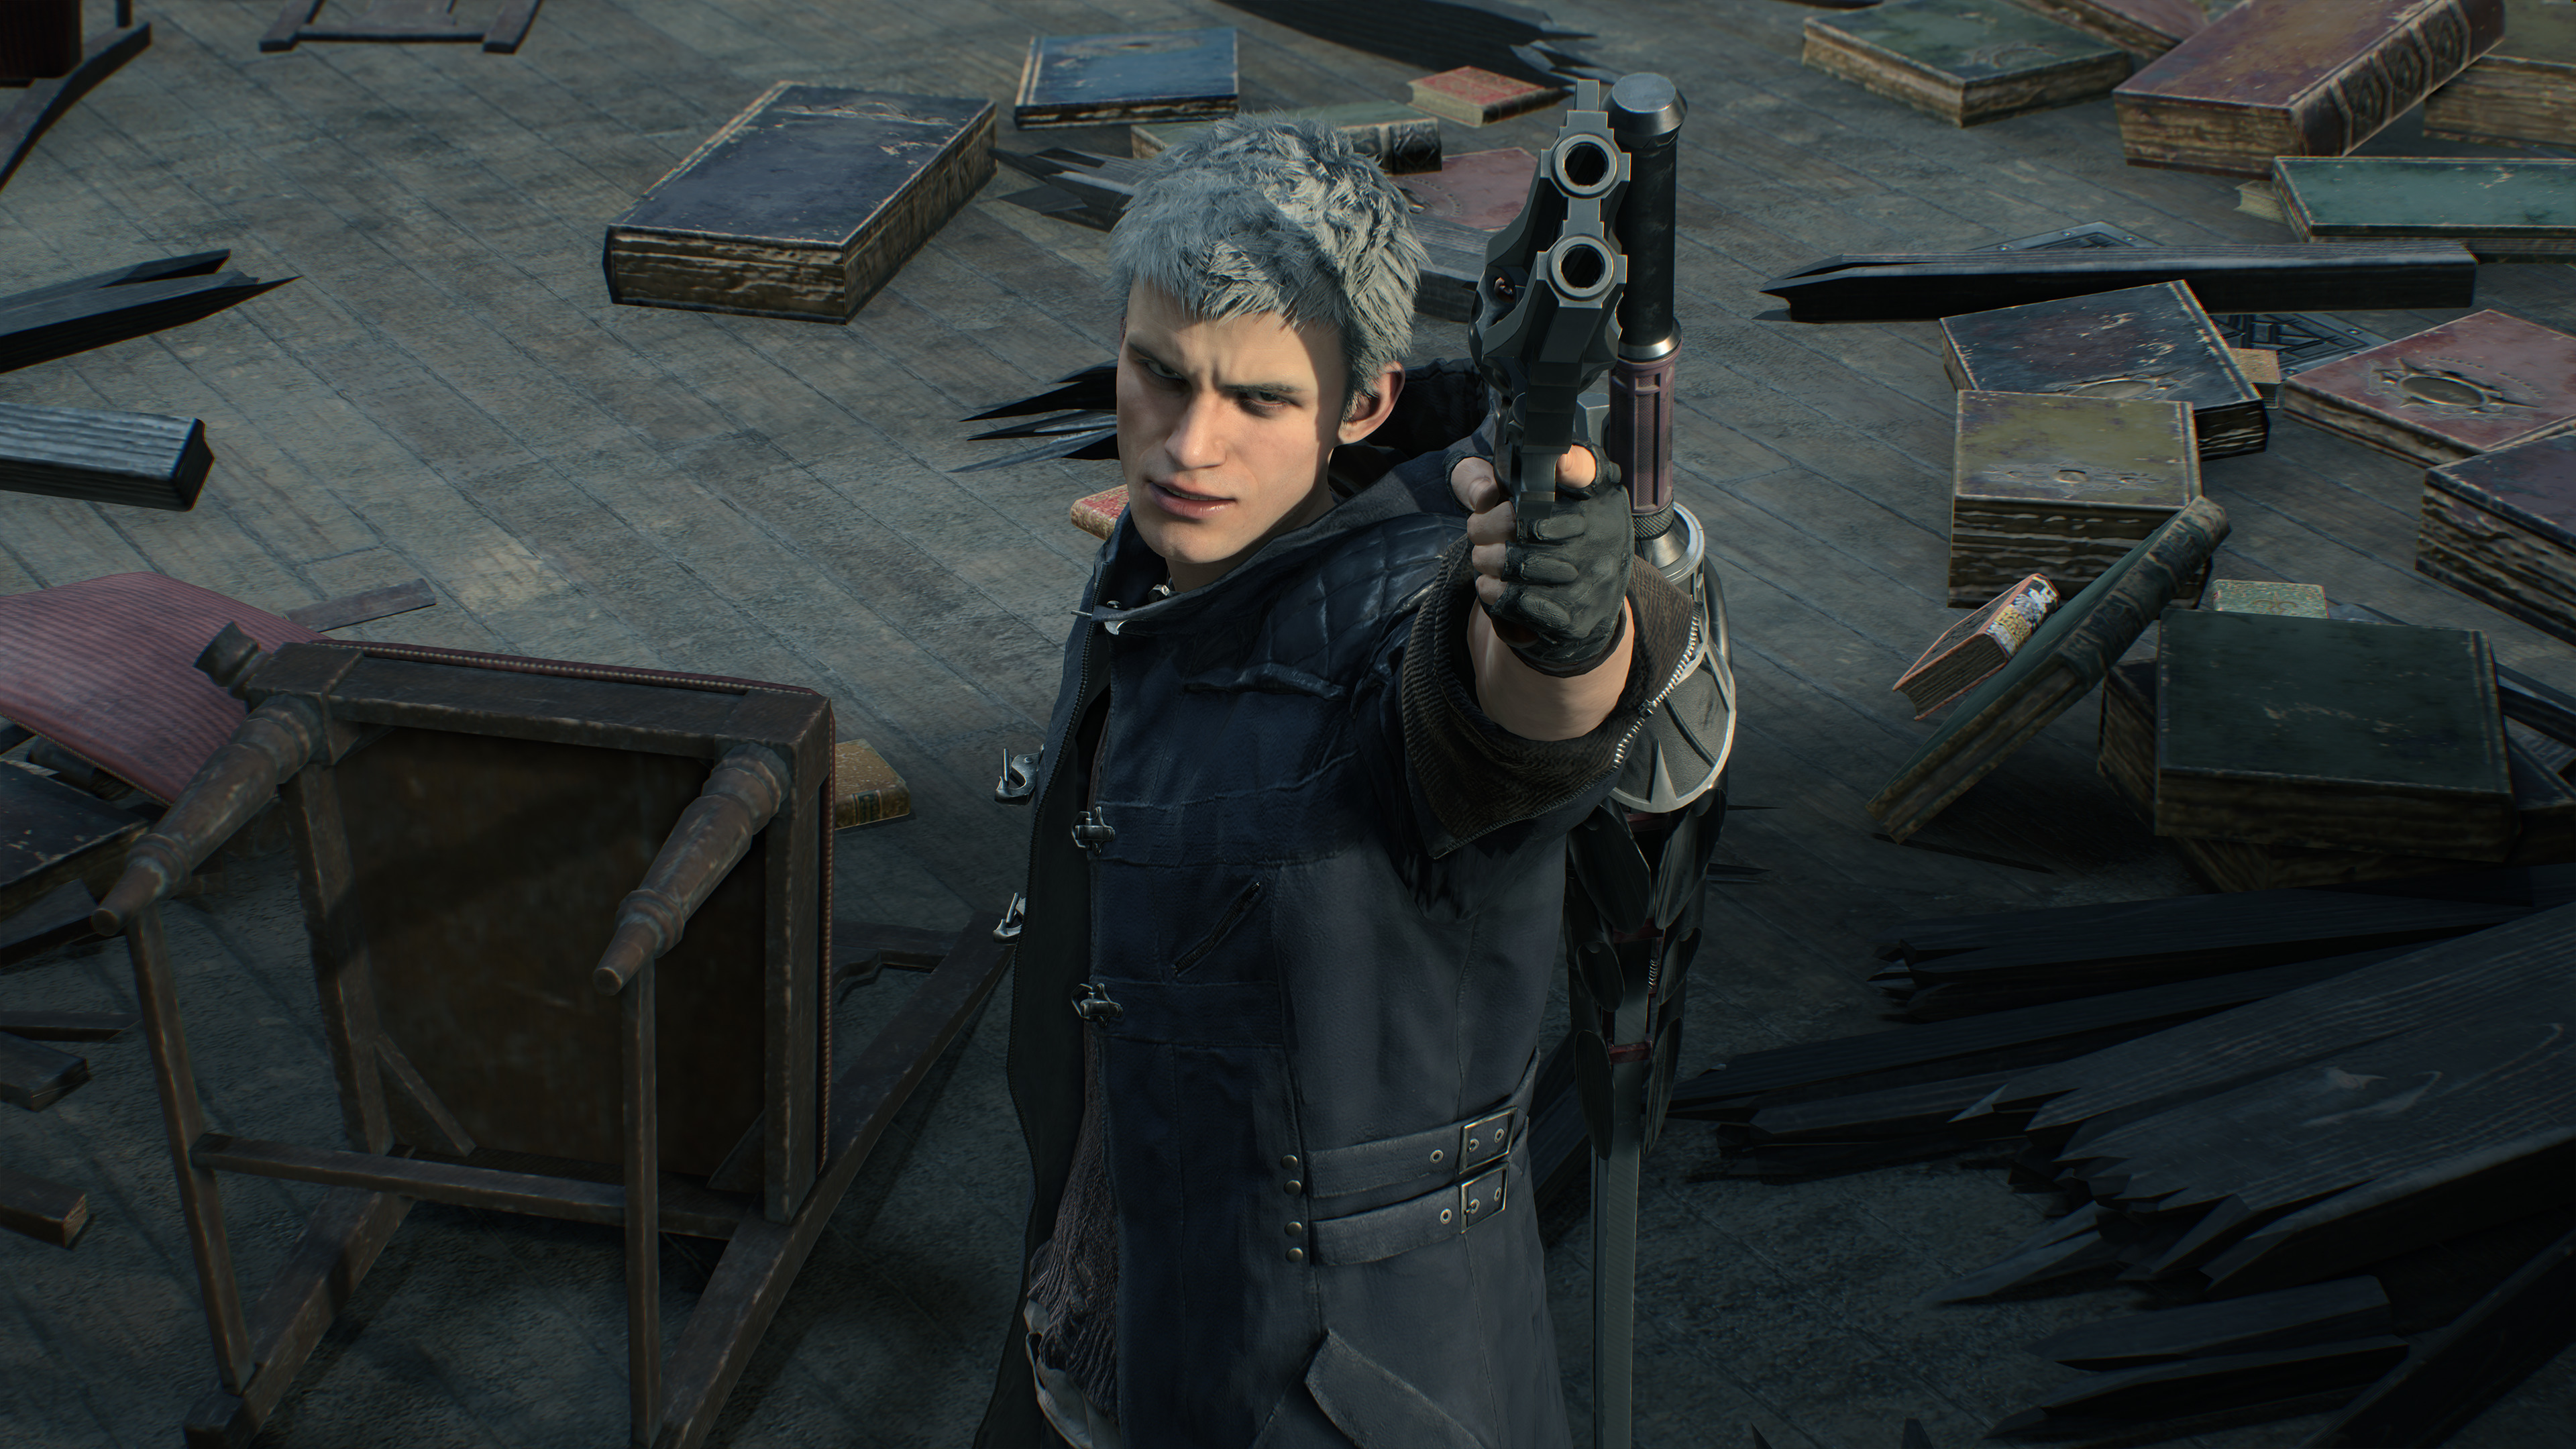 2019 Devil May Cry 5 Hd Games 4k Wallpapers Images